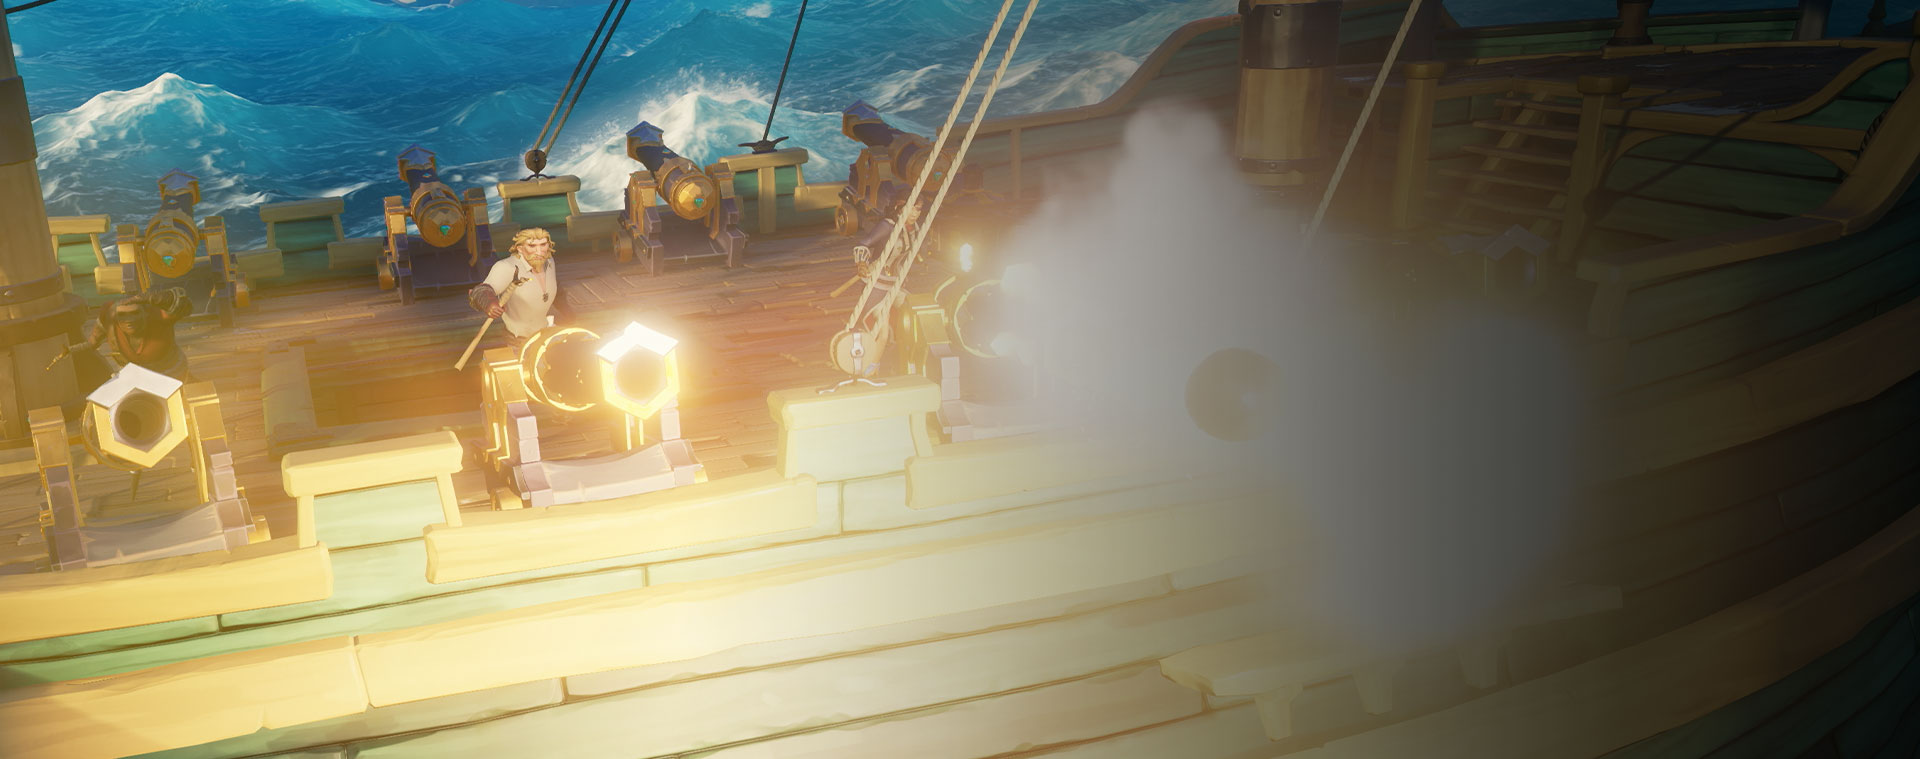 Characters from Sea of Thieves shooting cannons from a ship